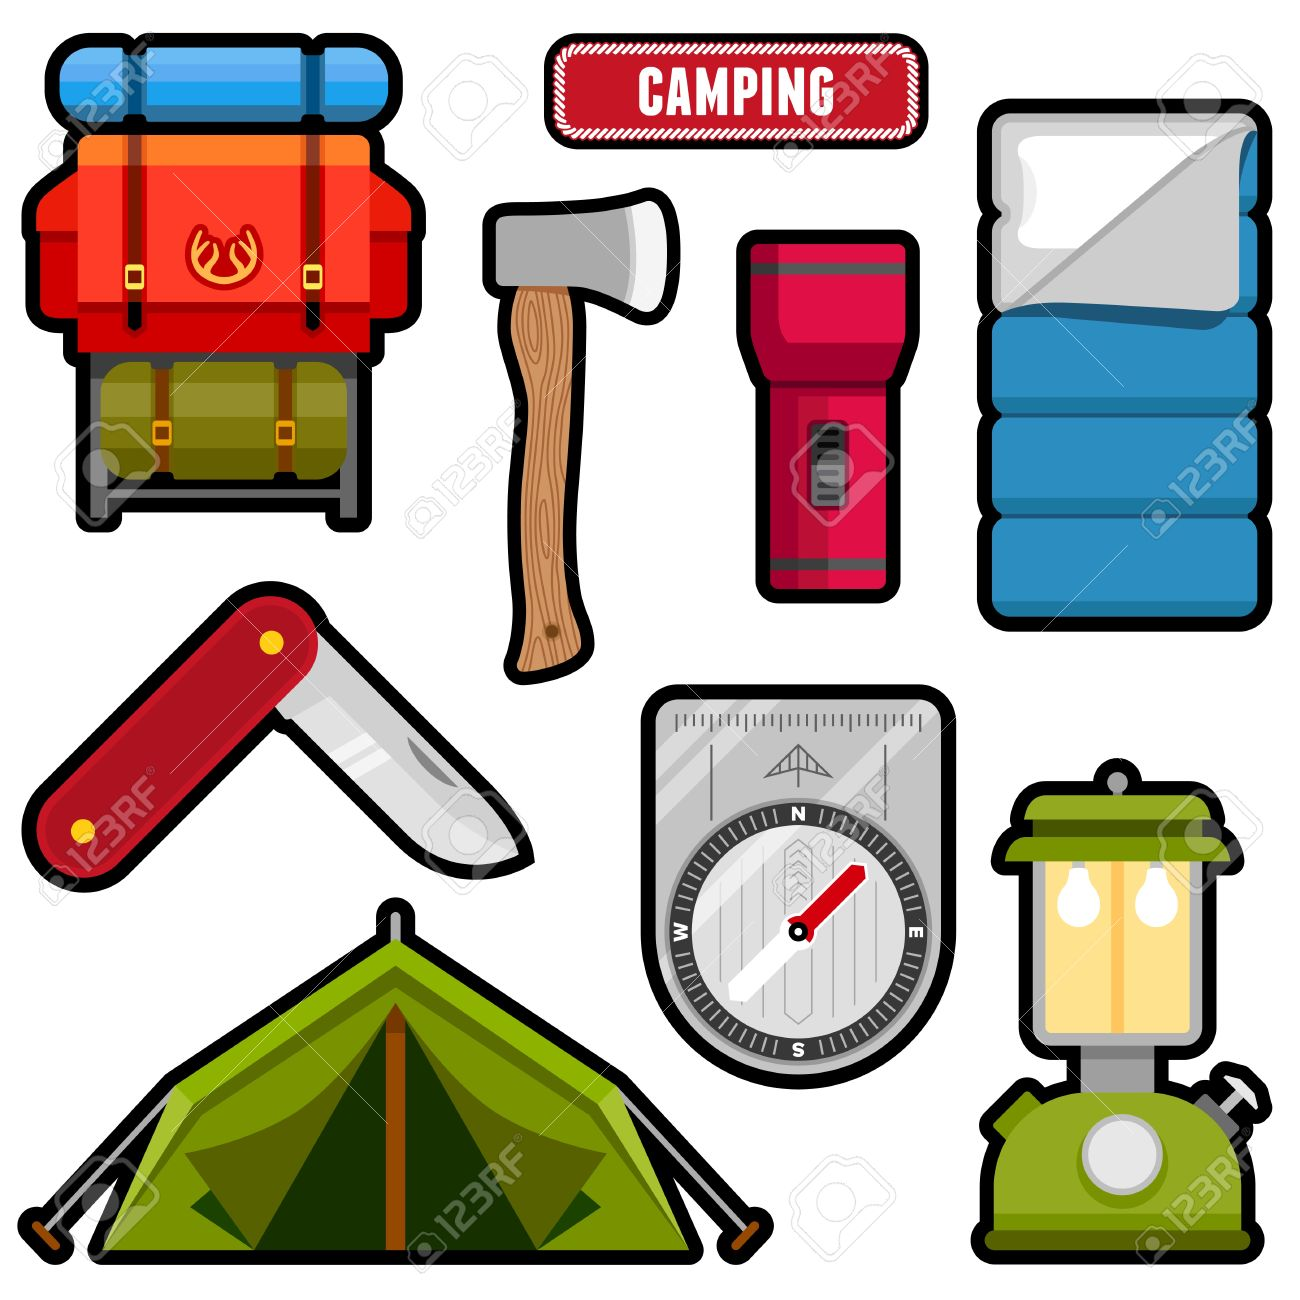 Camping equipment clipart #8